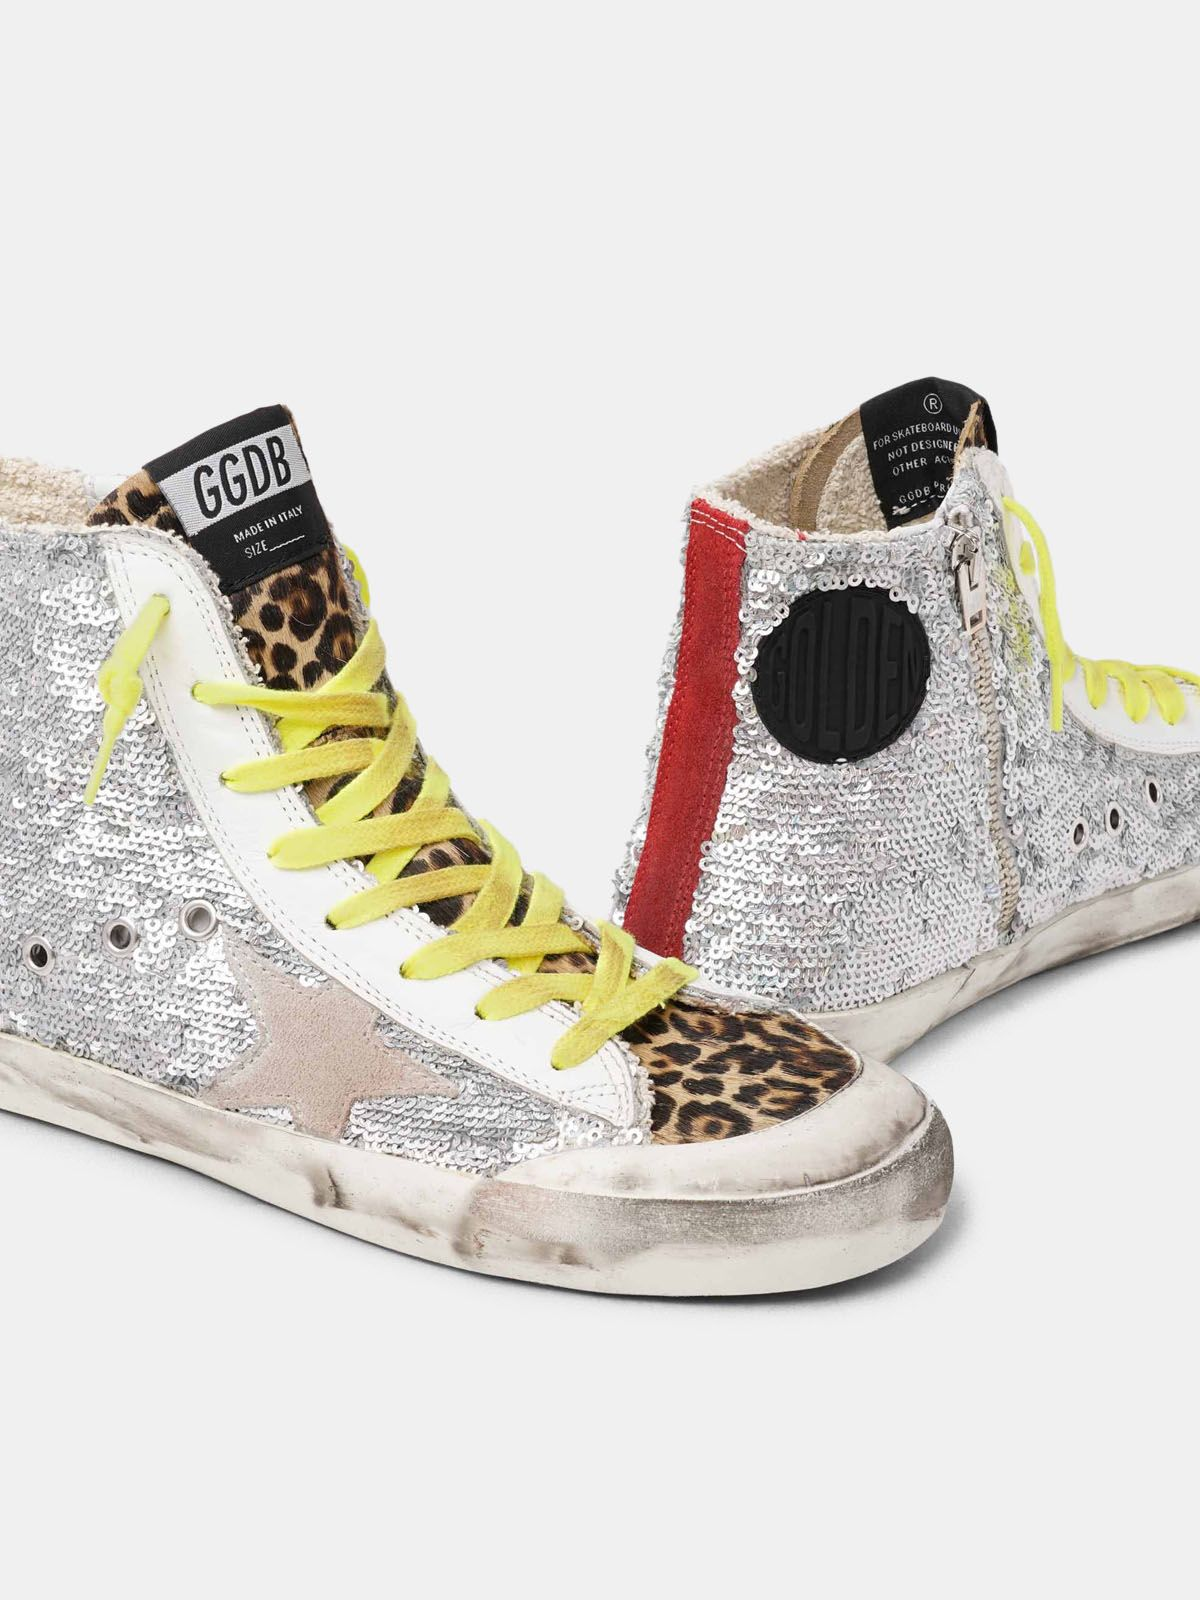 Golden Goose - Sneakers Francy con paillettes argento e cavallino leopardato in